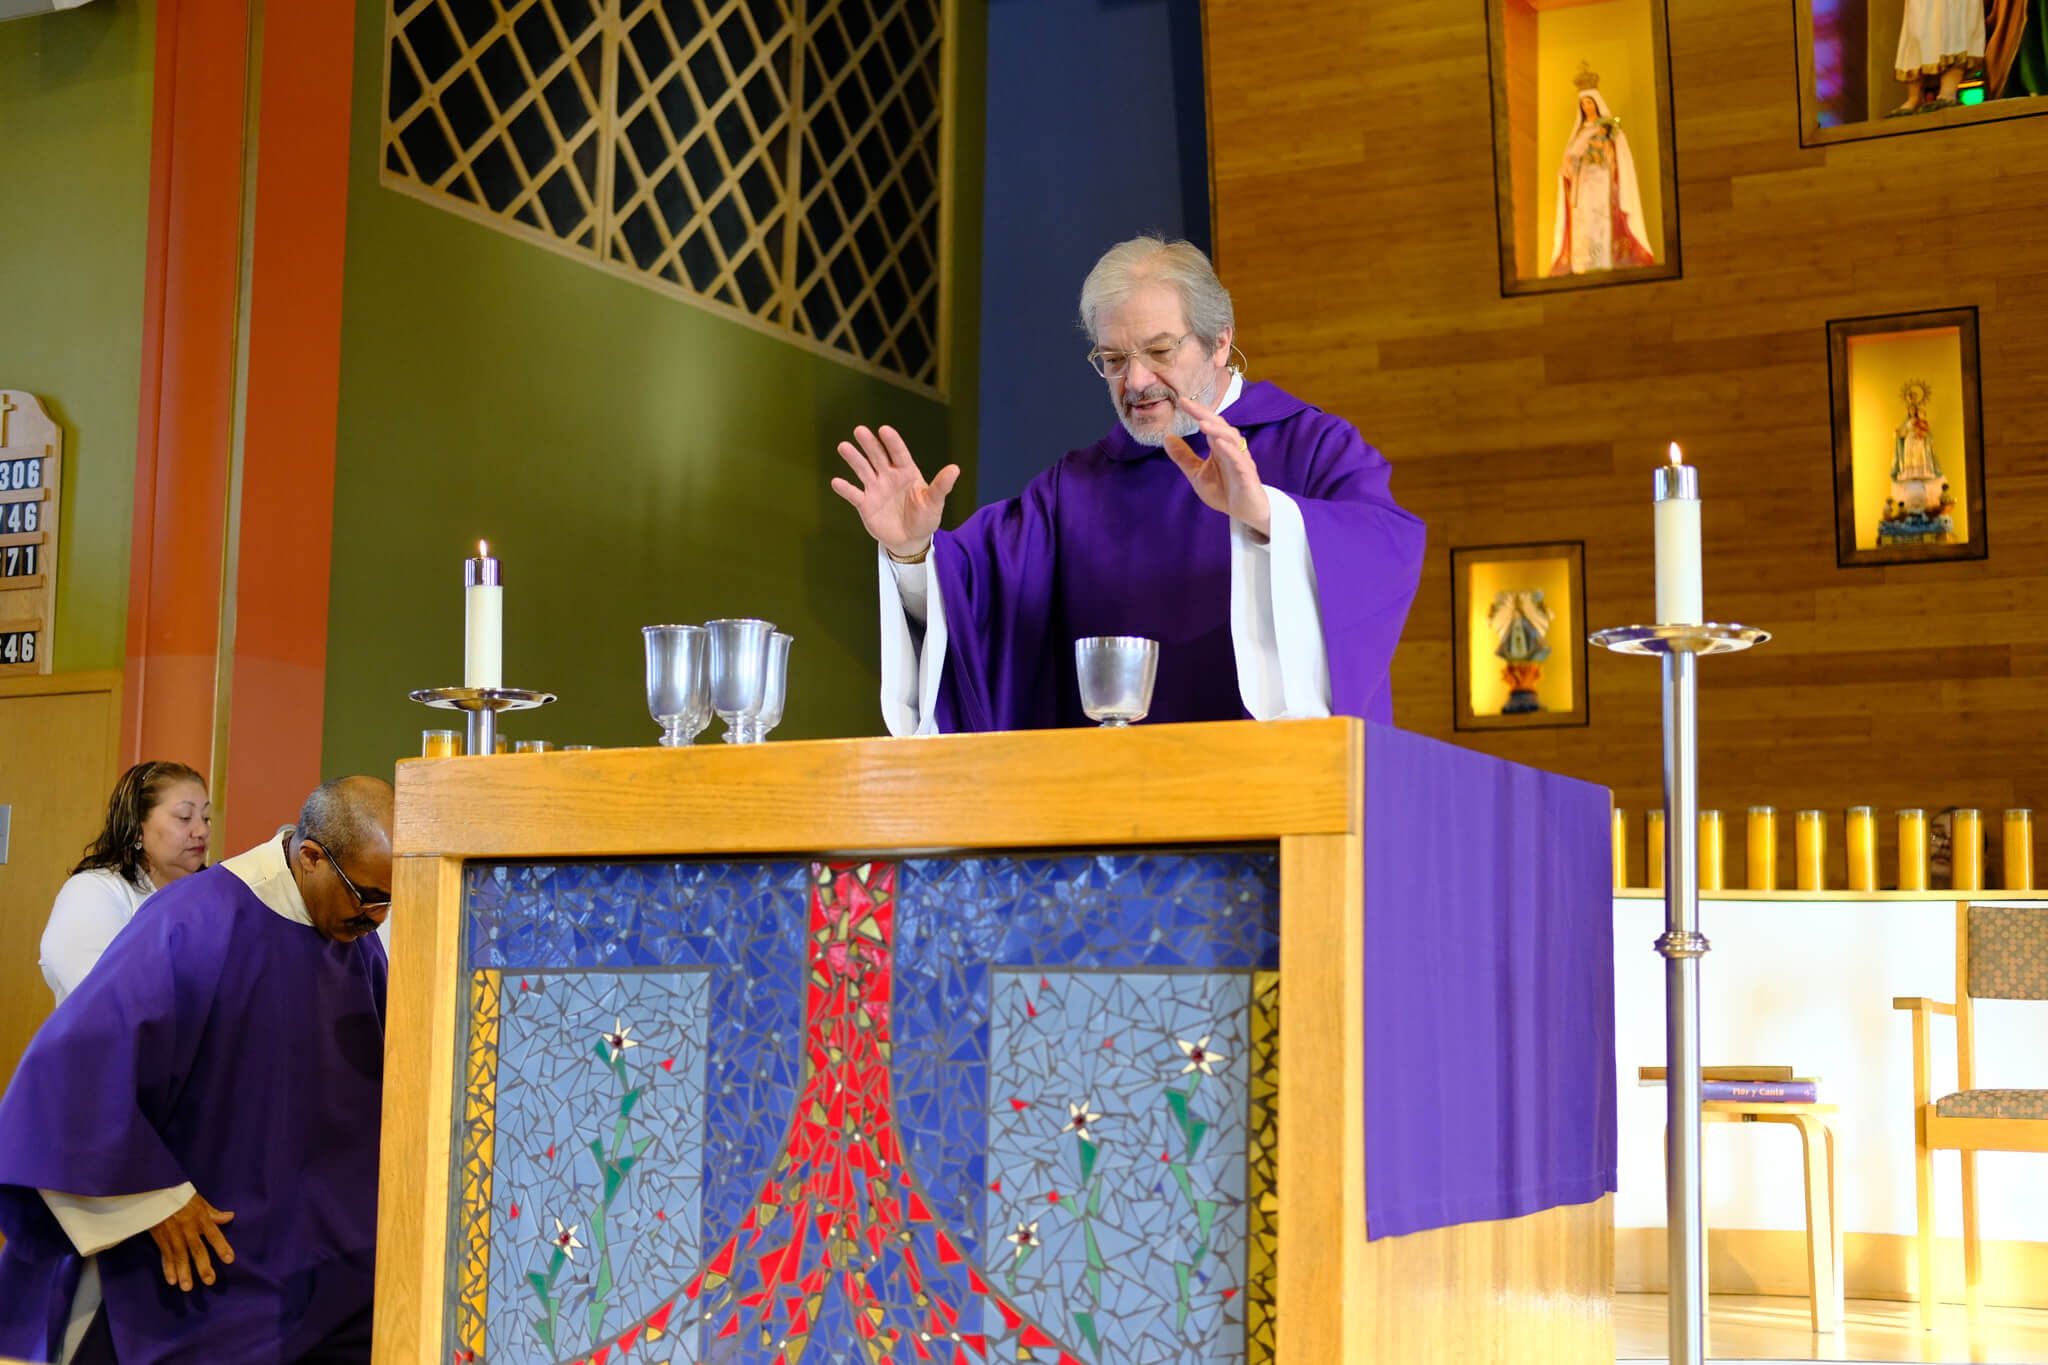 Father Steve Cron celebrates Mass